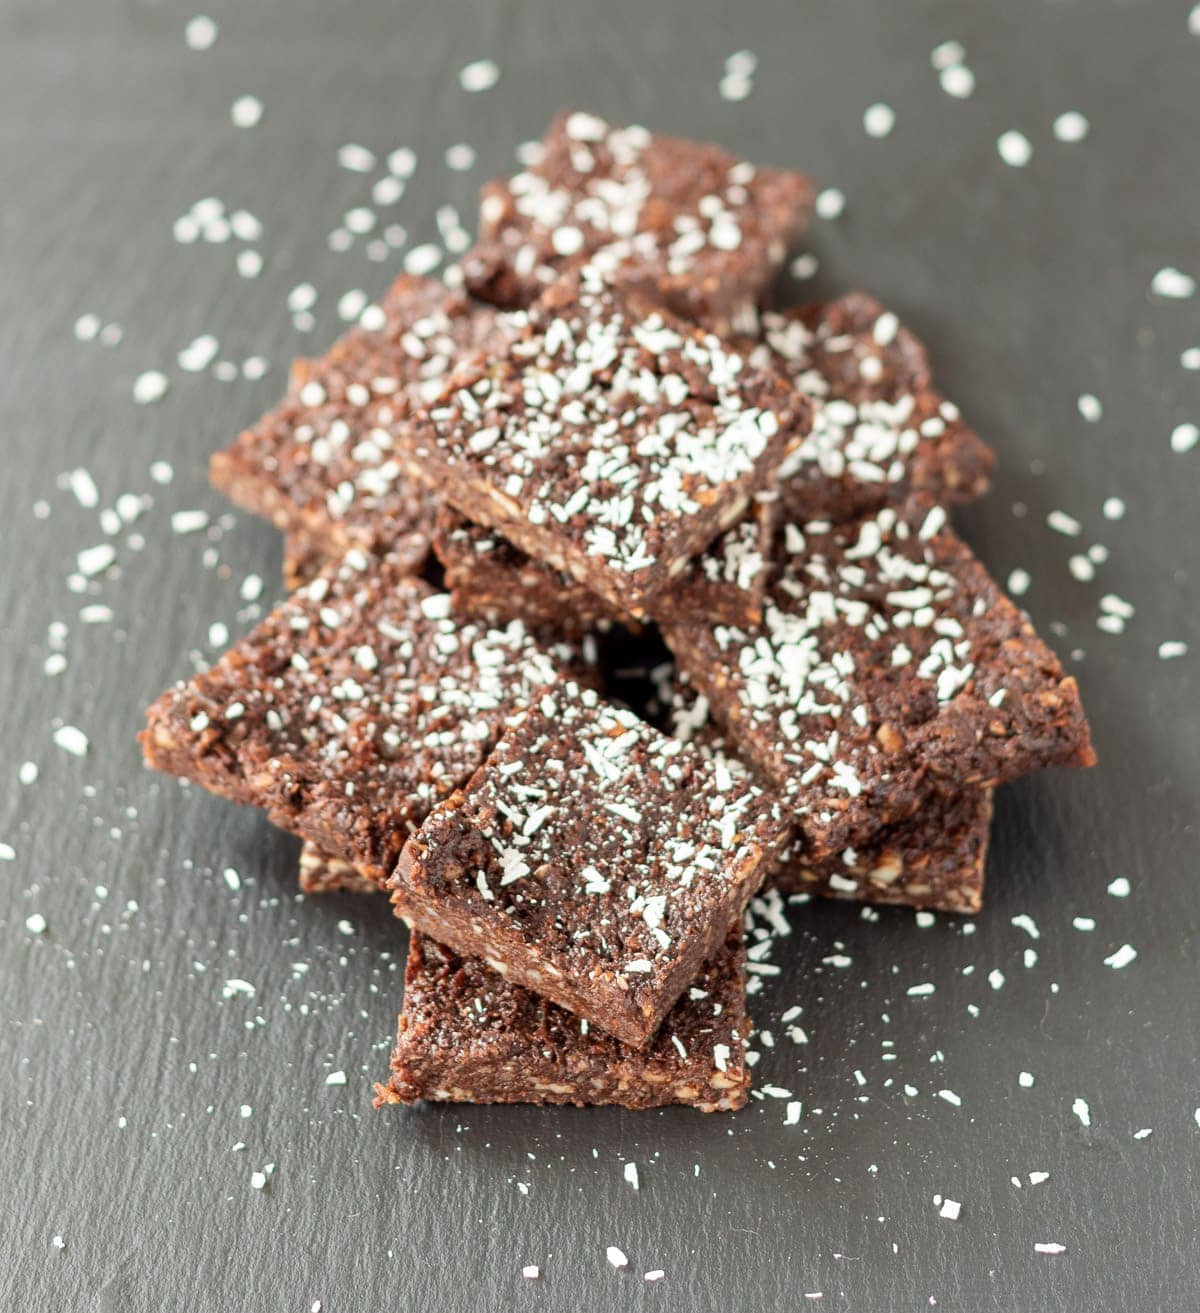 Birds eye view of a stack of 5-Ingredient no bake chocolate brownies on a slate decorated with grated coconut.